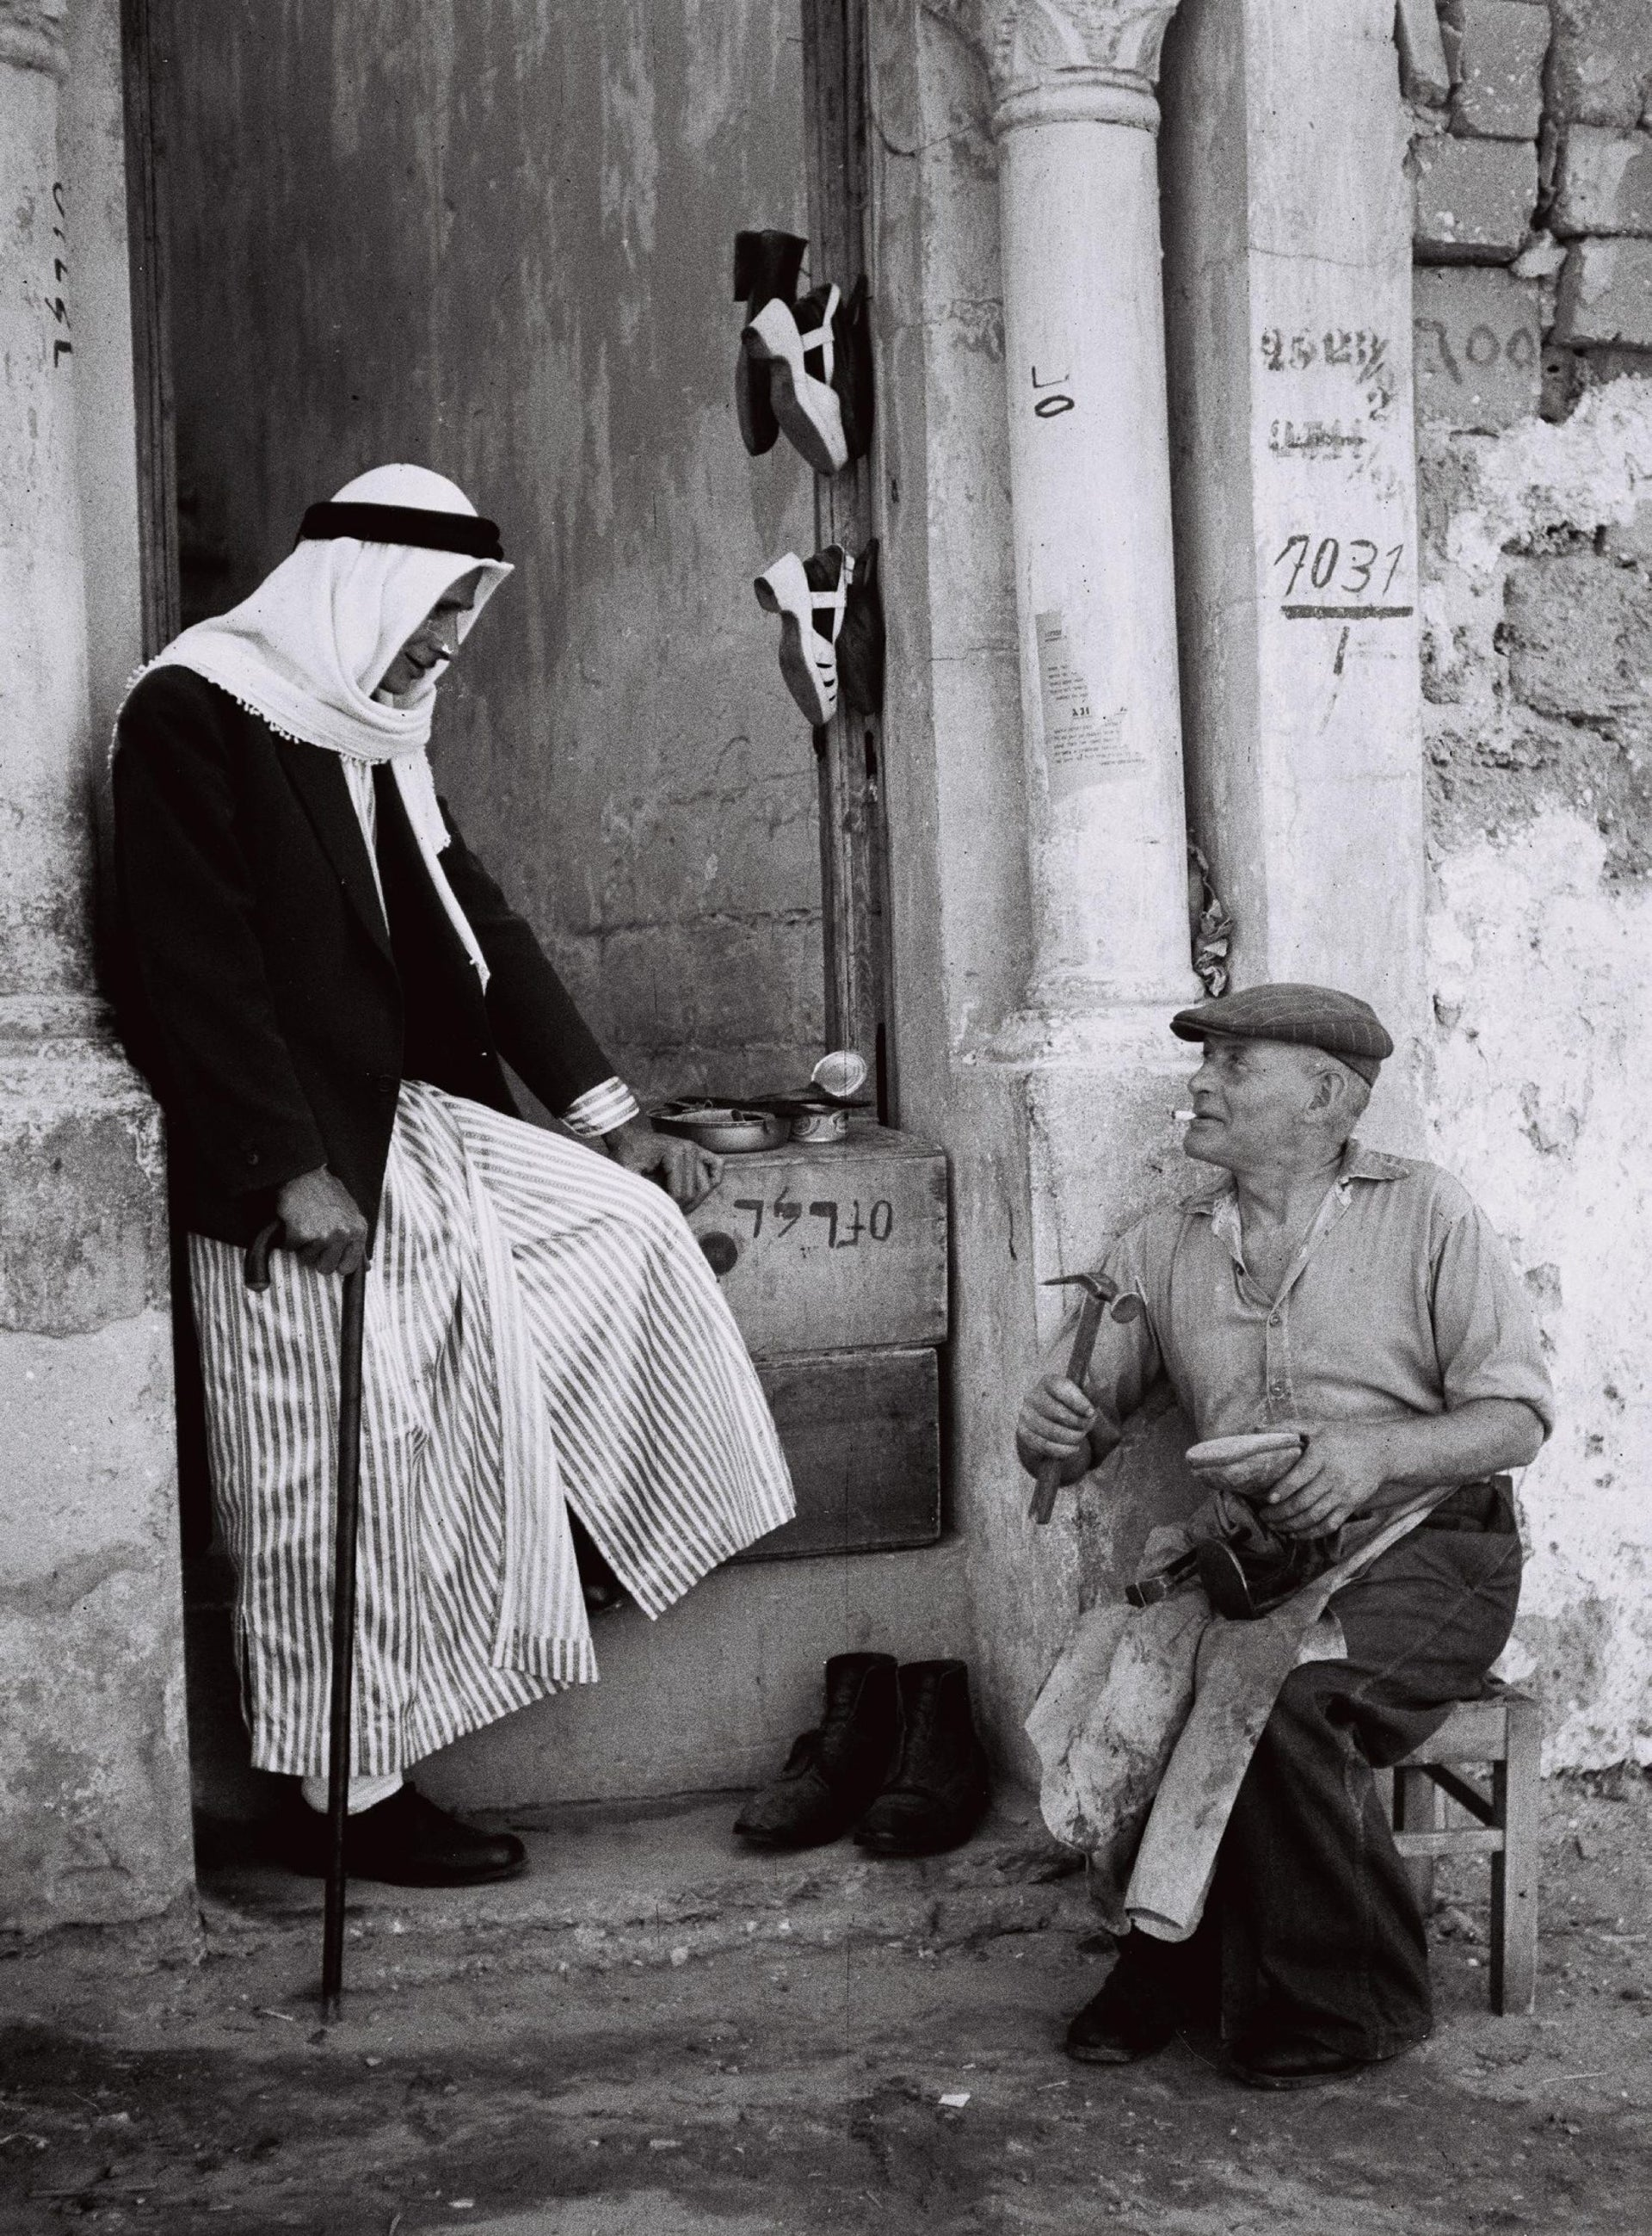 A Bulgarian cobbler who recently immigrated to Israel, speaking with an Arab man in Jaffa, 1949.